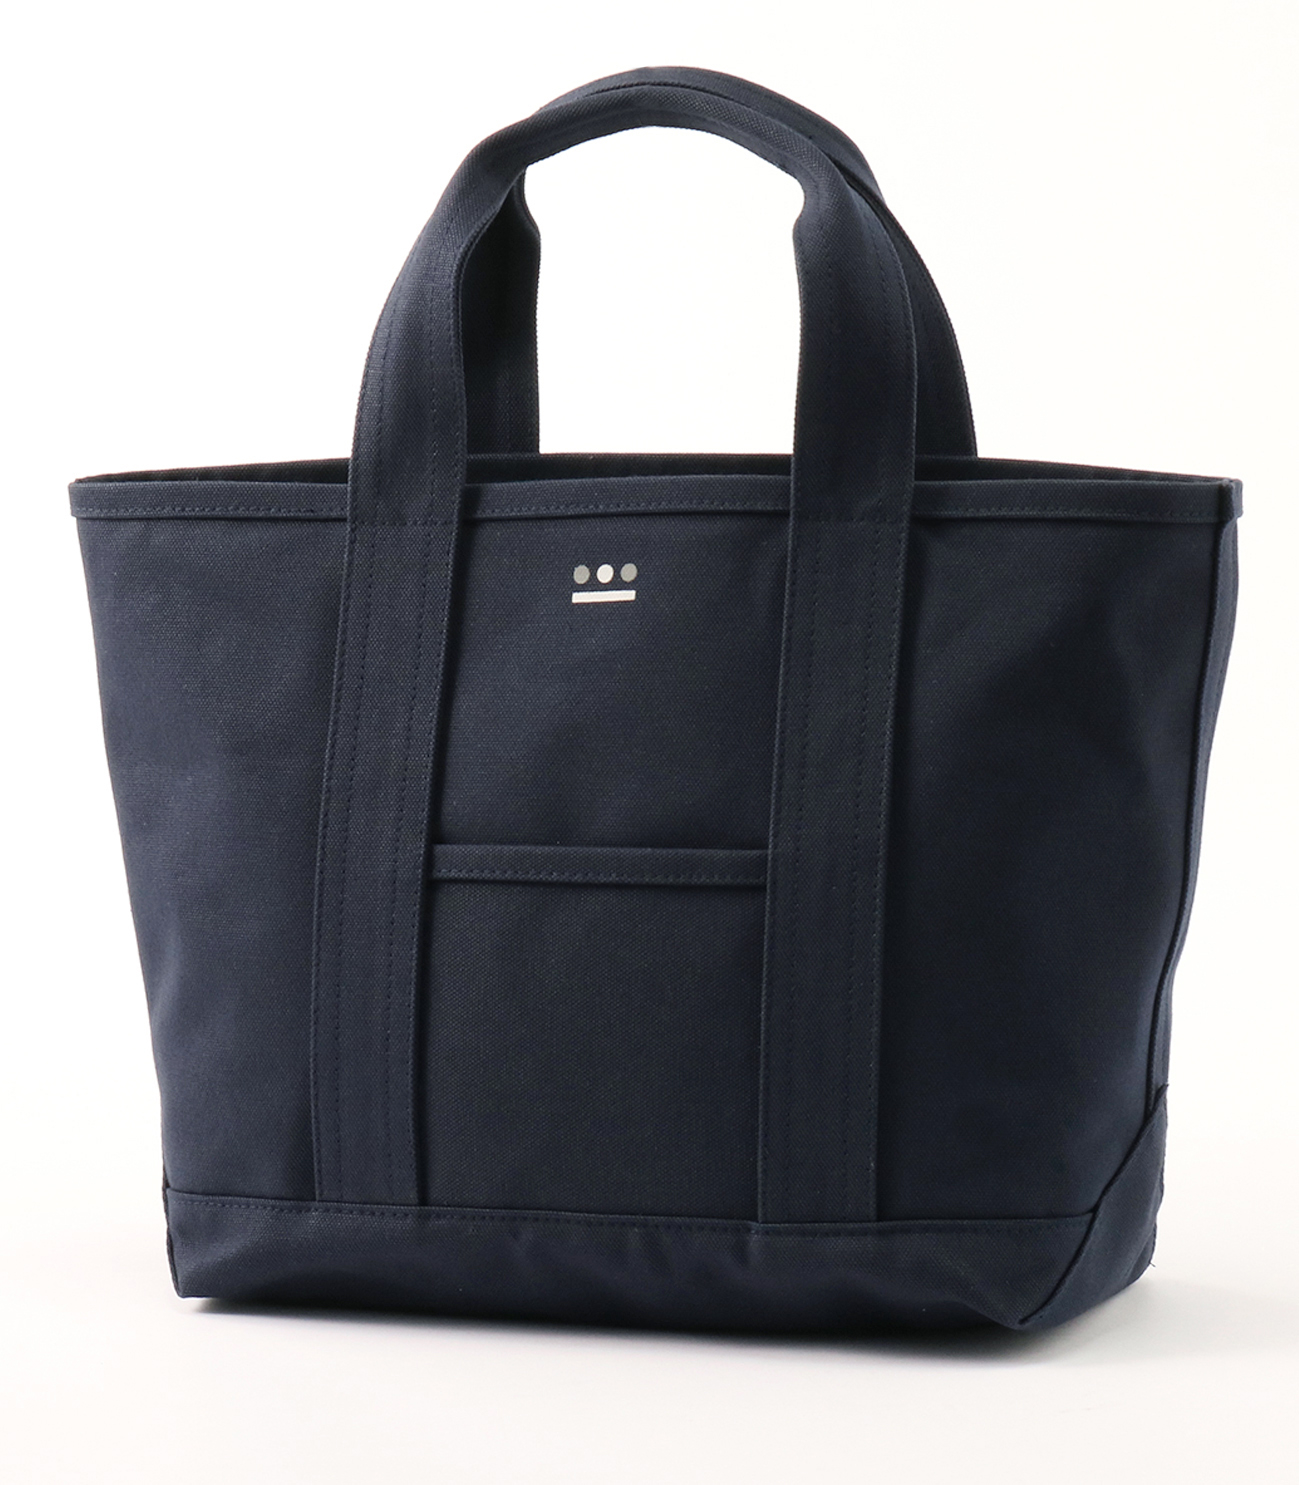 middle tote bag 詳細画像 navy 1